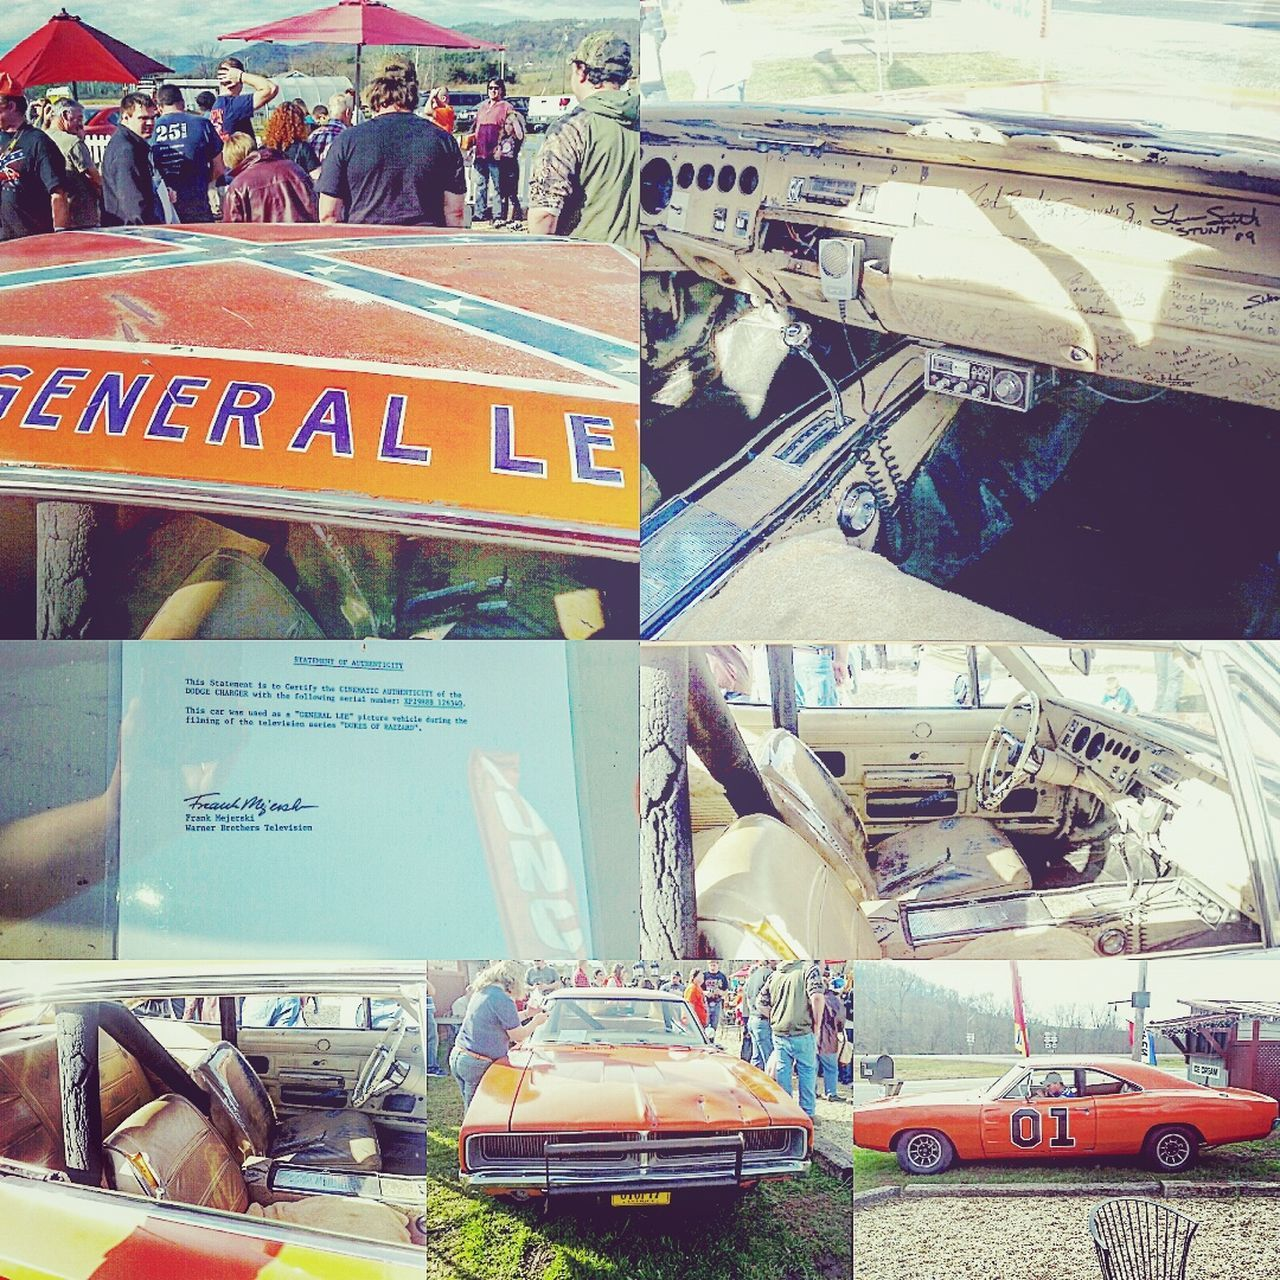 Camera 360 App General Lee GENERAL LEE CHARGER Dukes Of Hazzard Authentic Car Cooter Cooters In The Country Sperryville Va Sperryville Virginia Tom Wopat Ben Jones Luke Duke